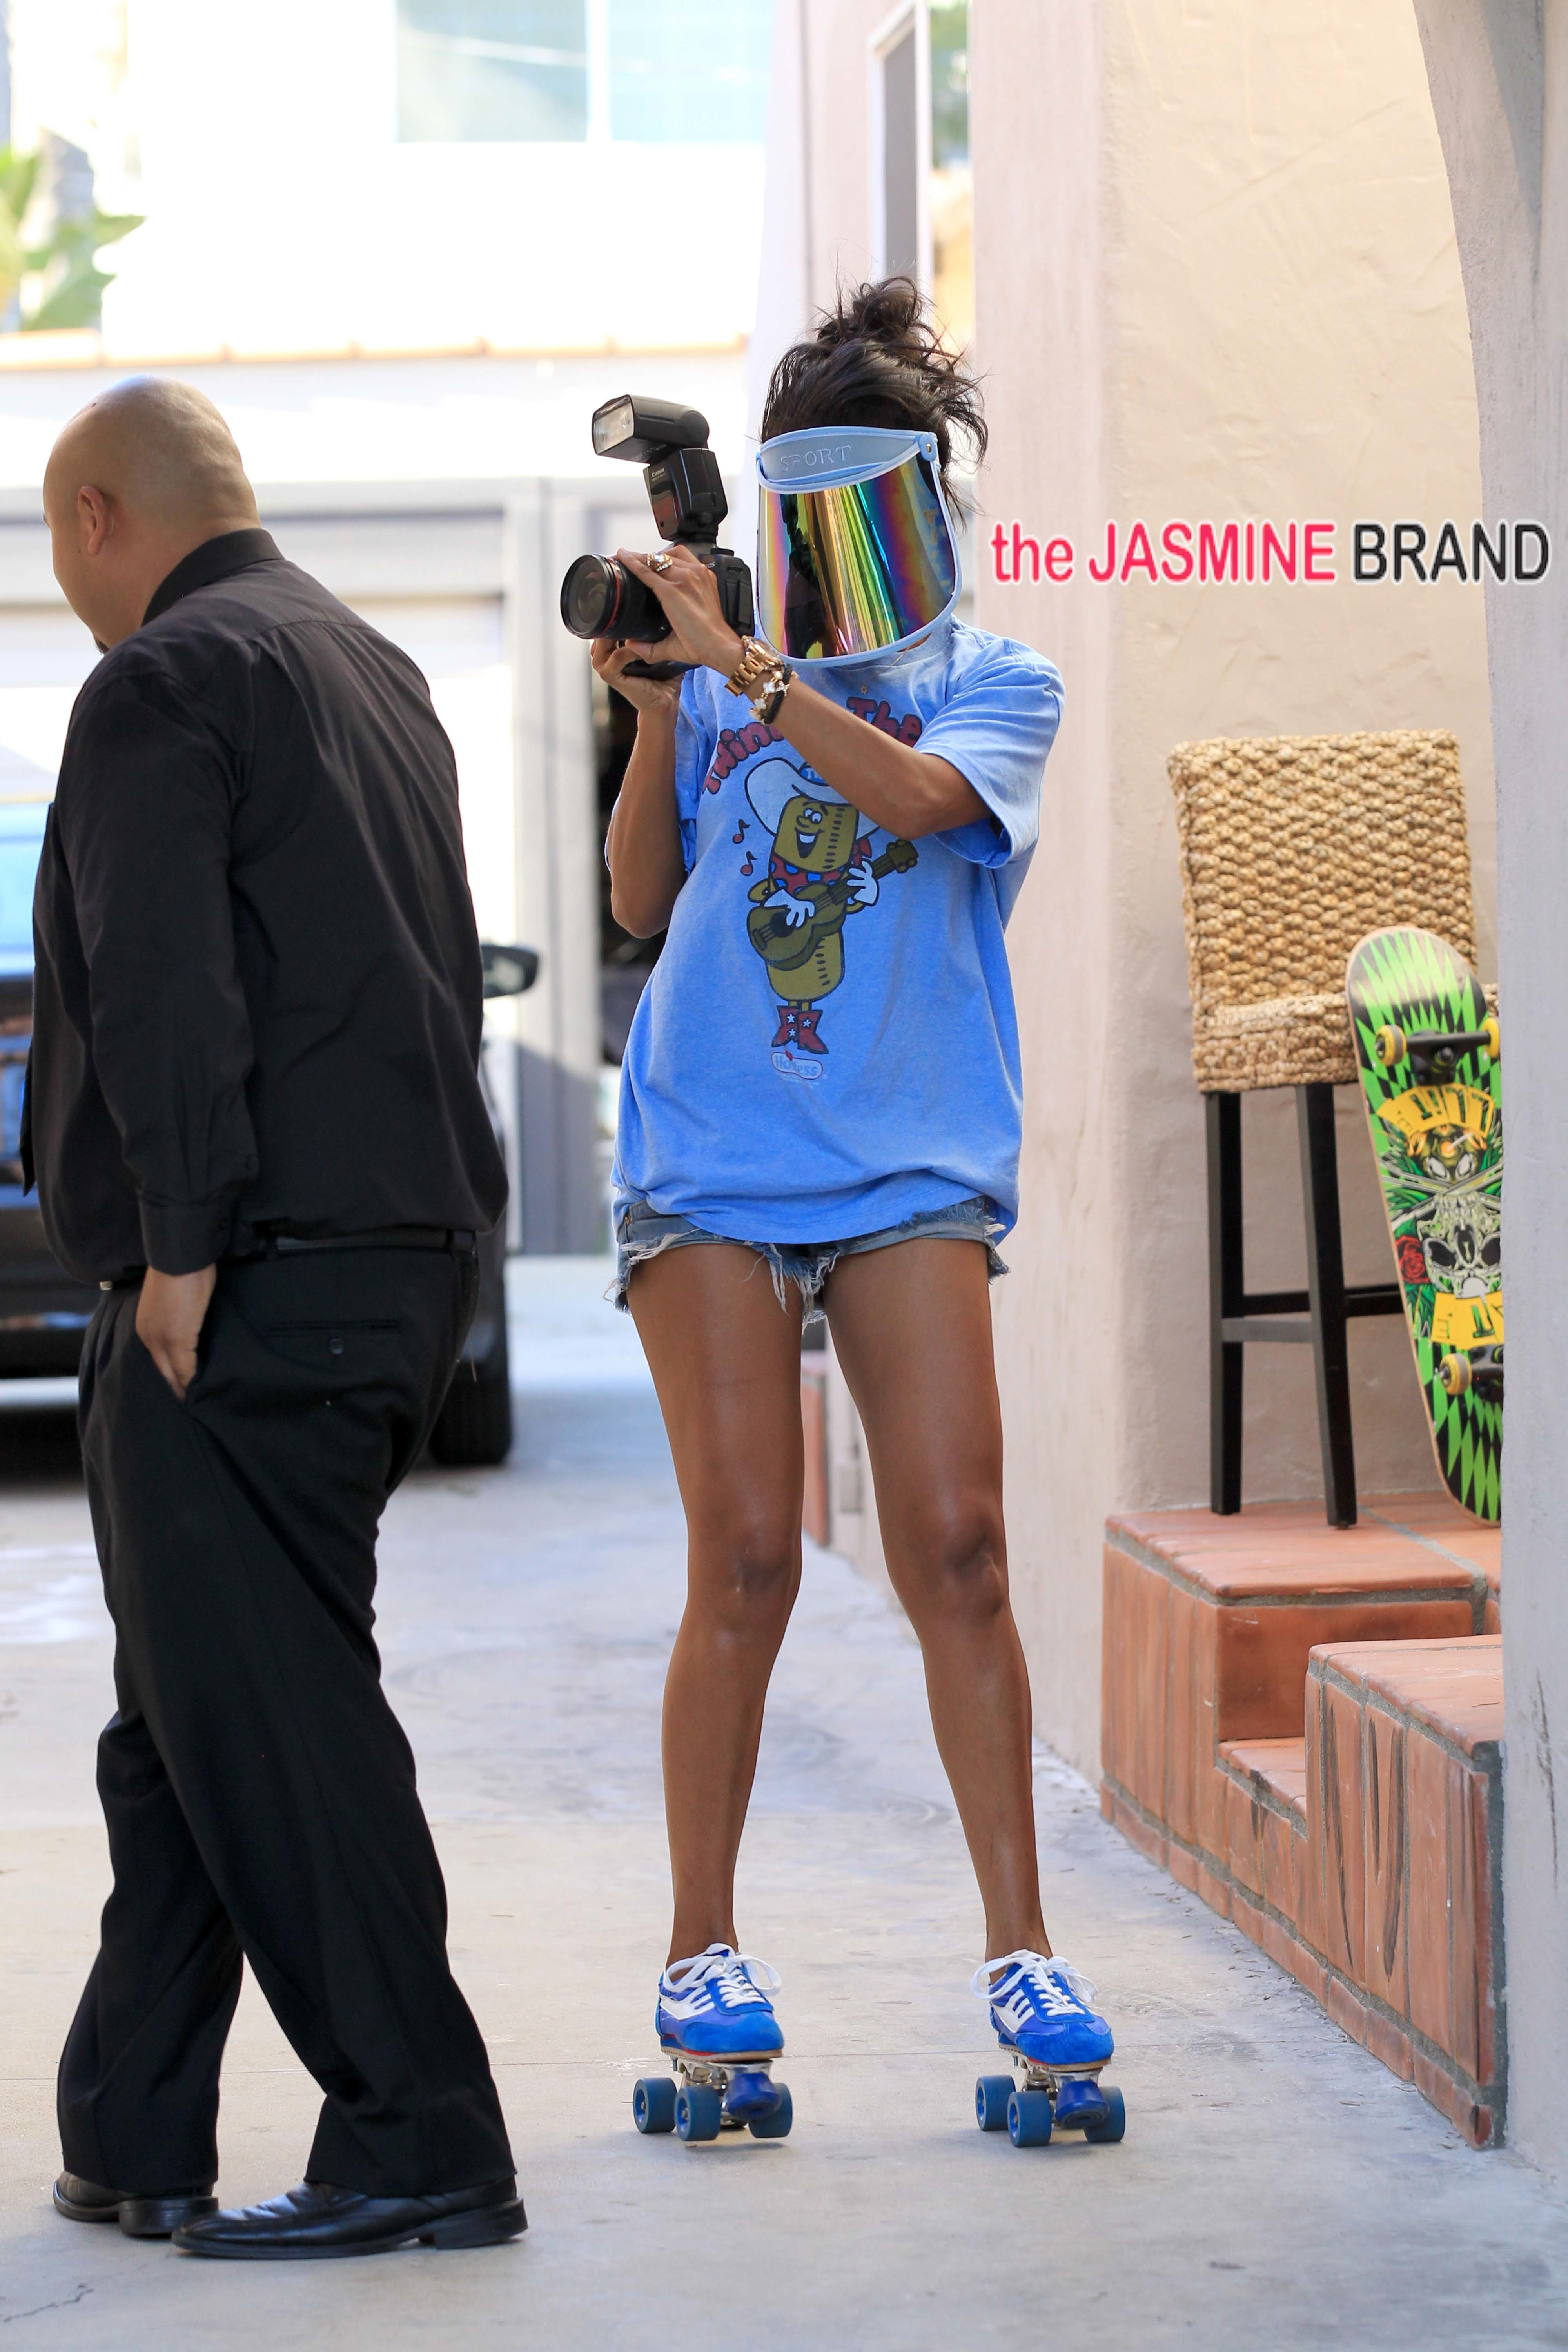 V. Stiviano dances on roller skates and takes photos of awaiting press